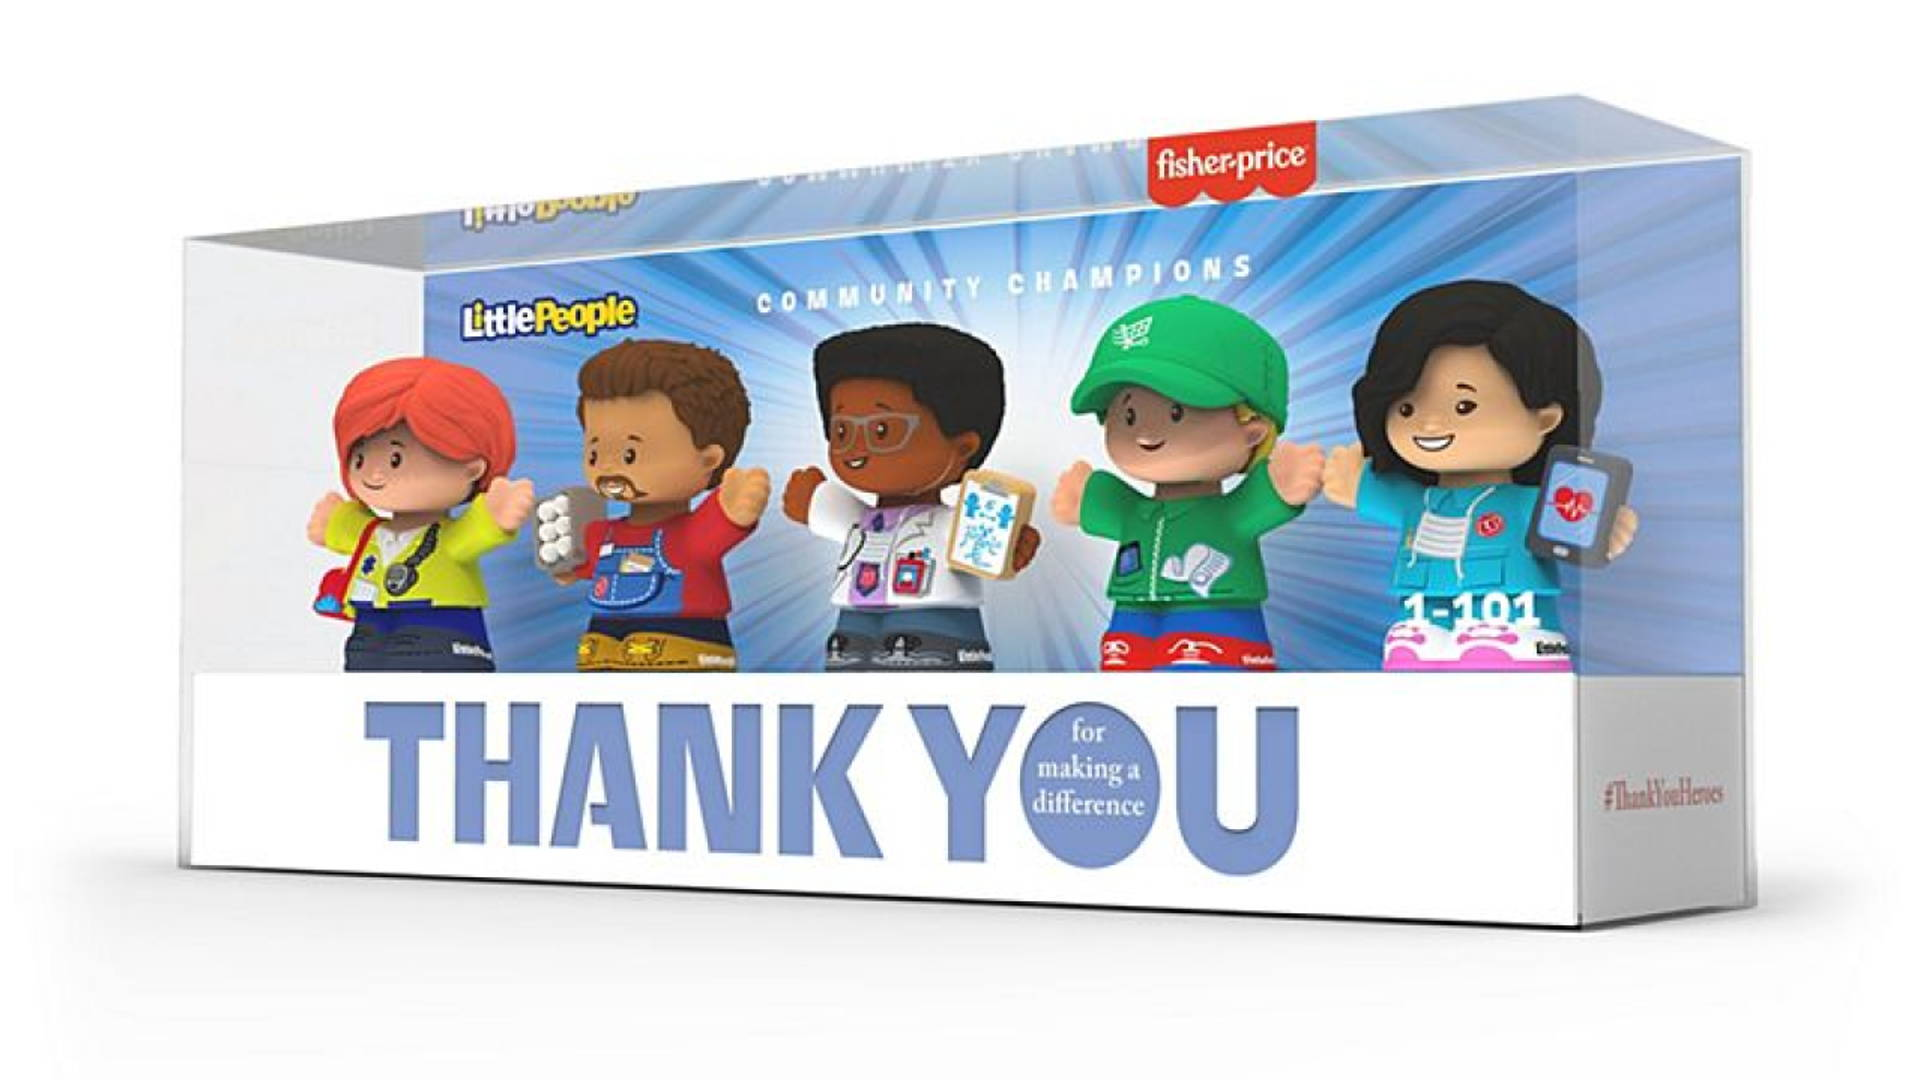 Fisher Price S Latest Toys Honor And Support Coronavirus Heroes Dieline Design Branding Packaging Inspiration